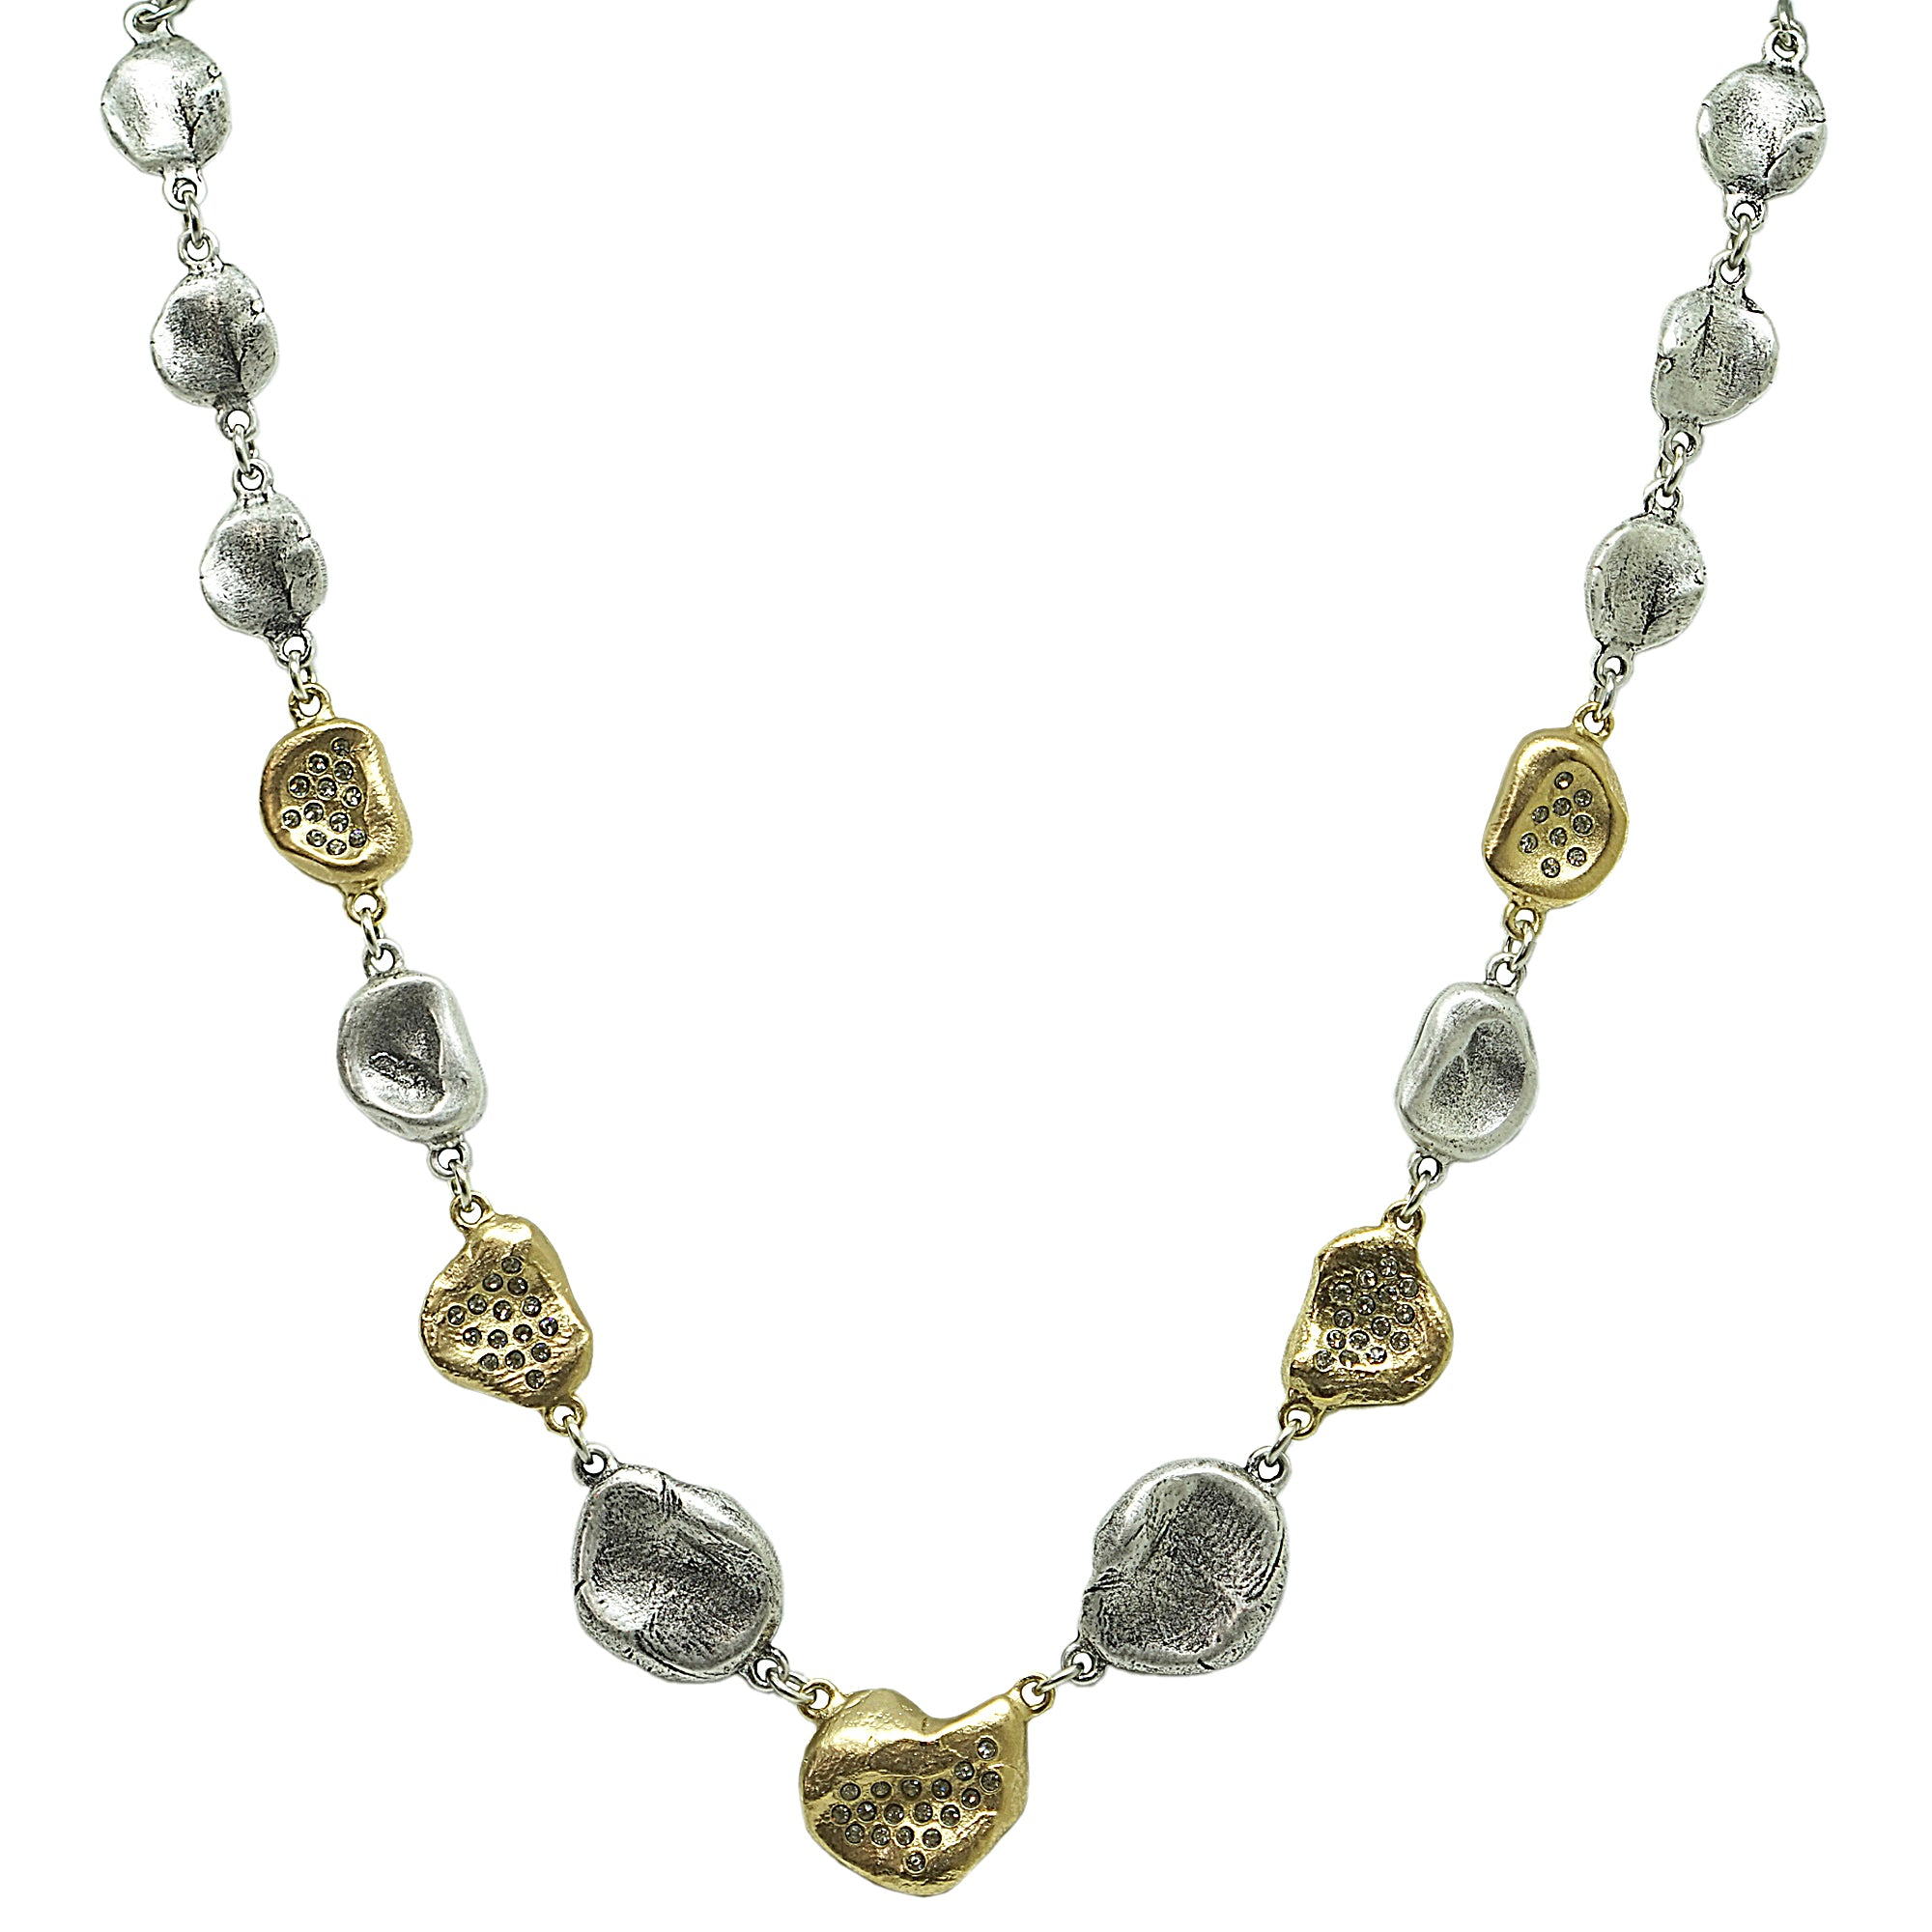 TWO TONE GRADED IMPRESSION NECKLACE